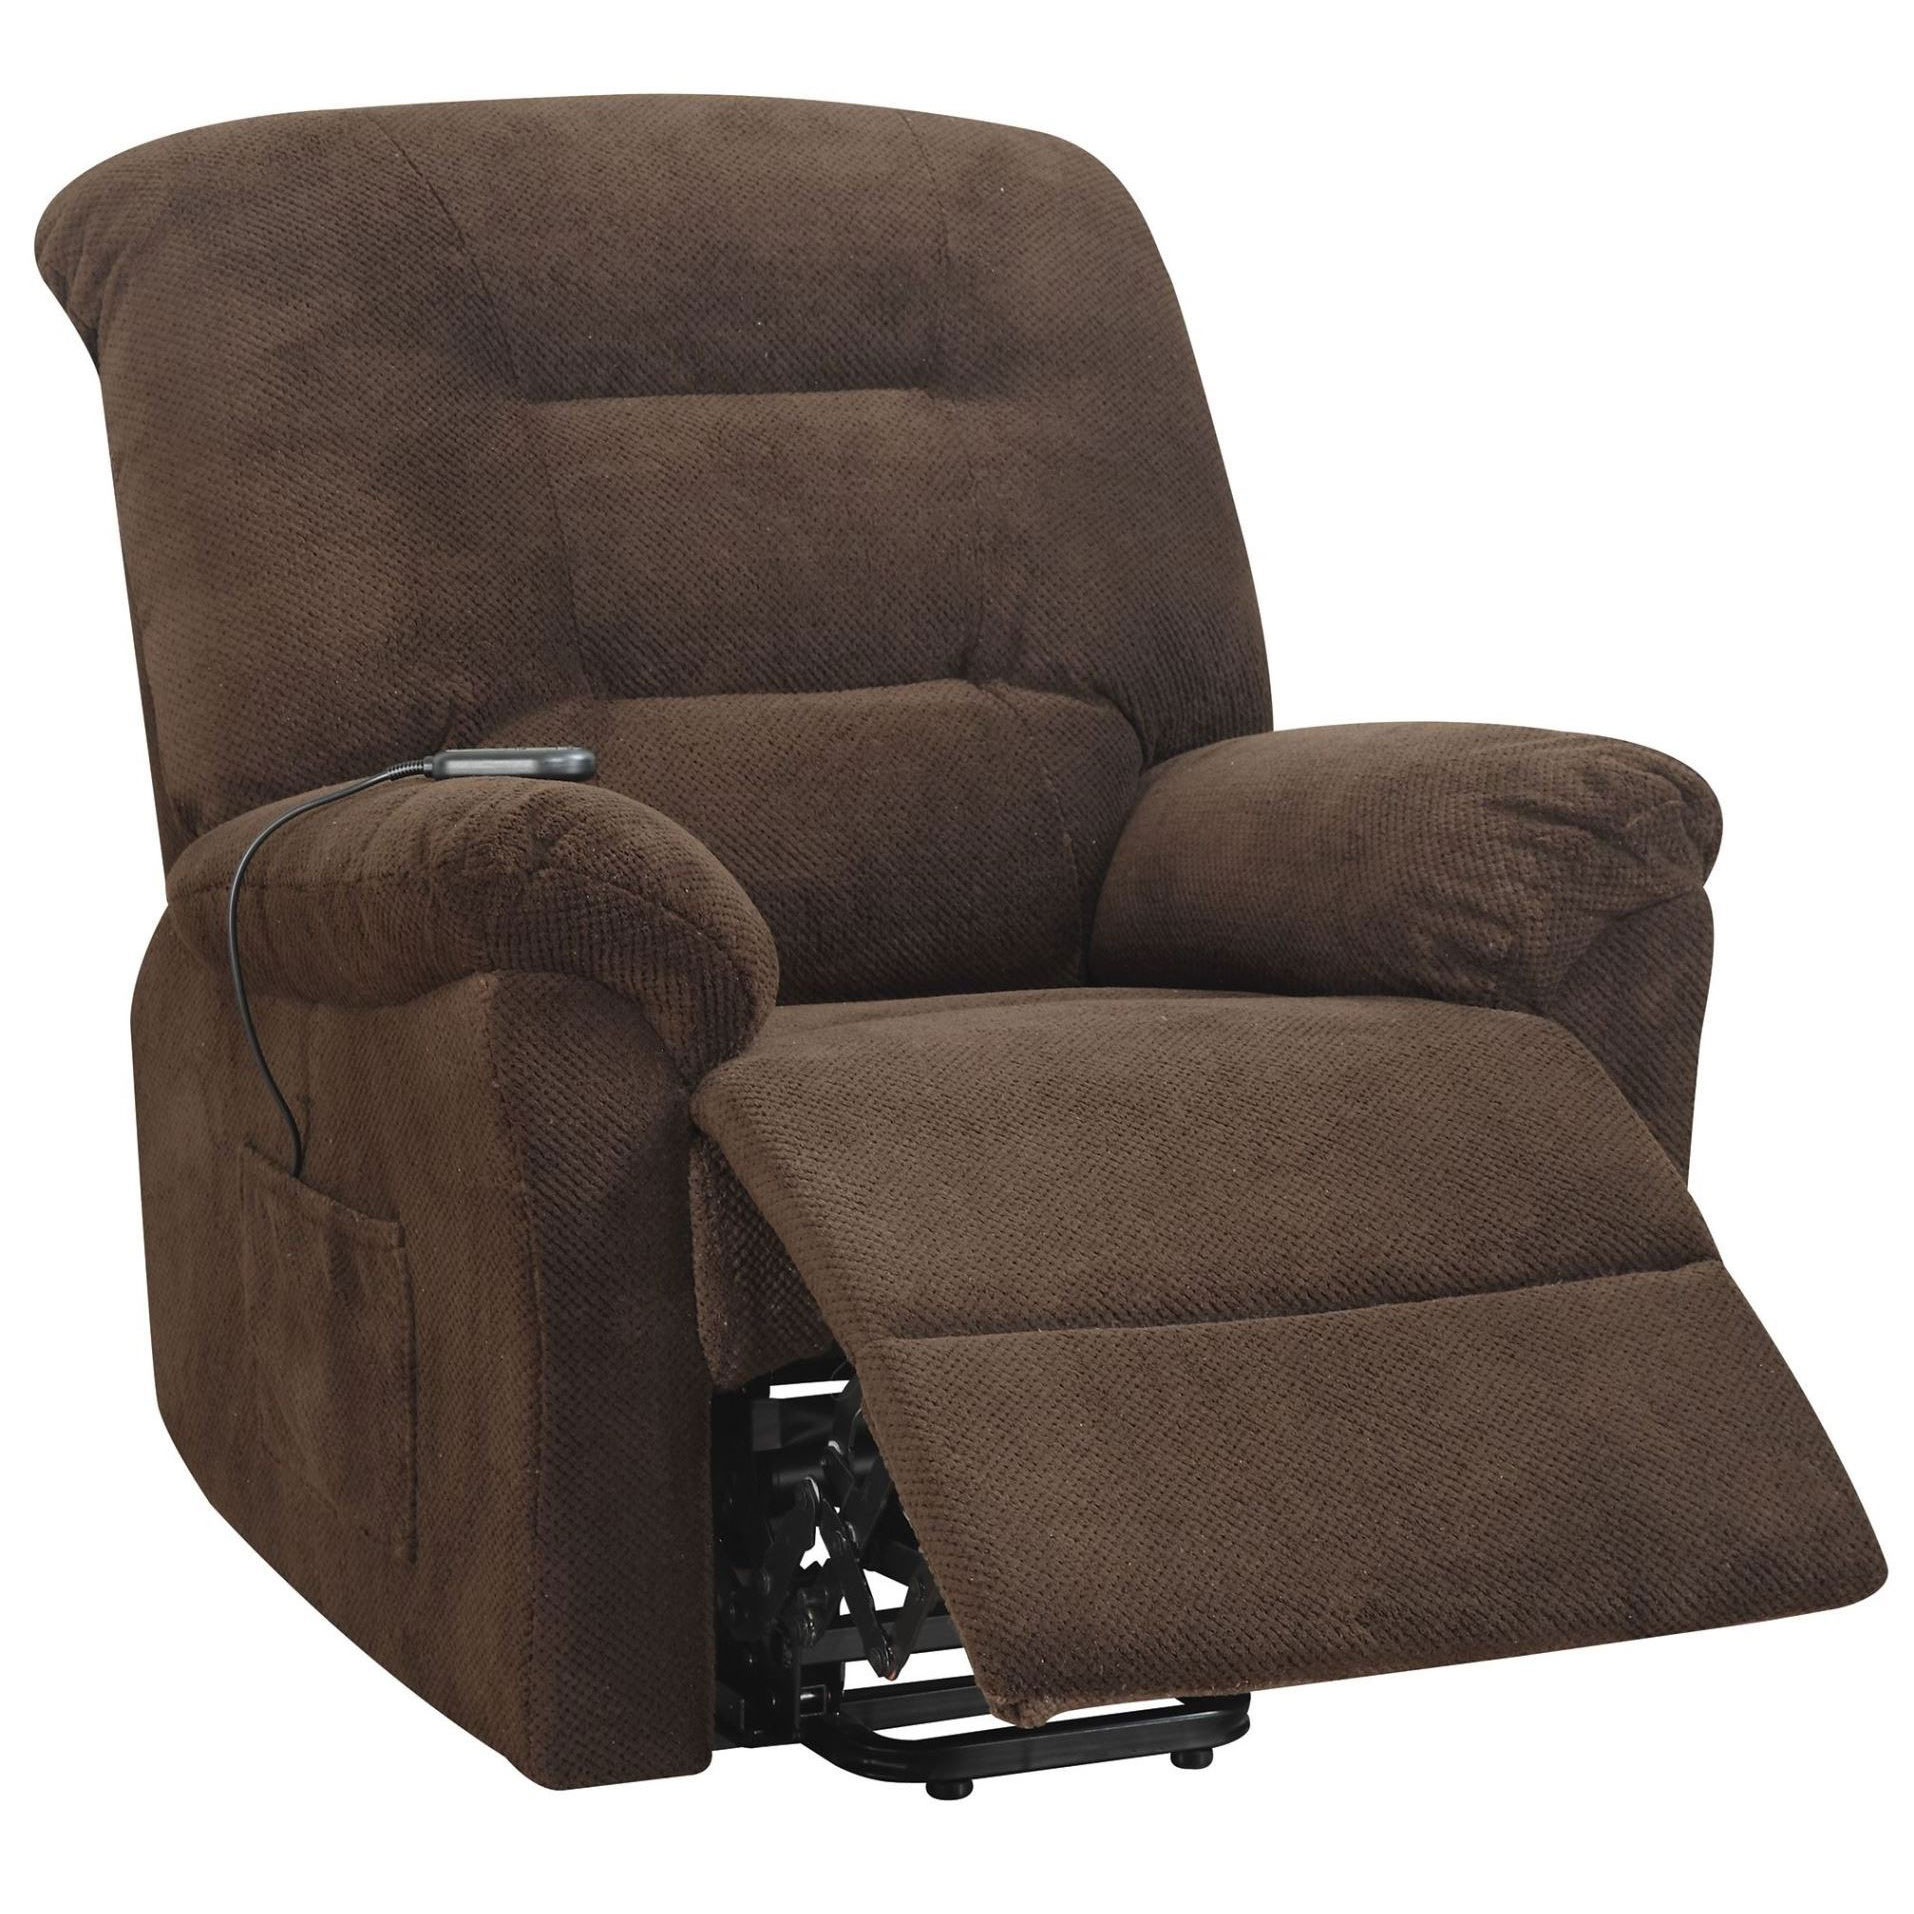 Surprising Details About Coaster Home Furnishings Power Lift Recliner Chair And Remote Control Chocolate Gmtry Best Dining Table And Chair Ideas Images Gmtryco